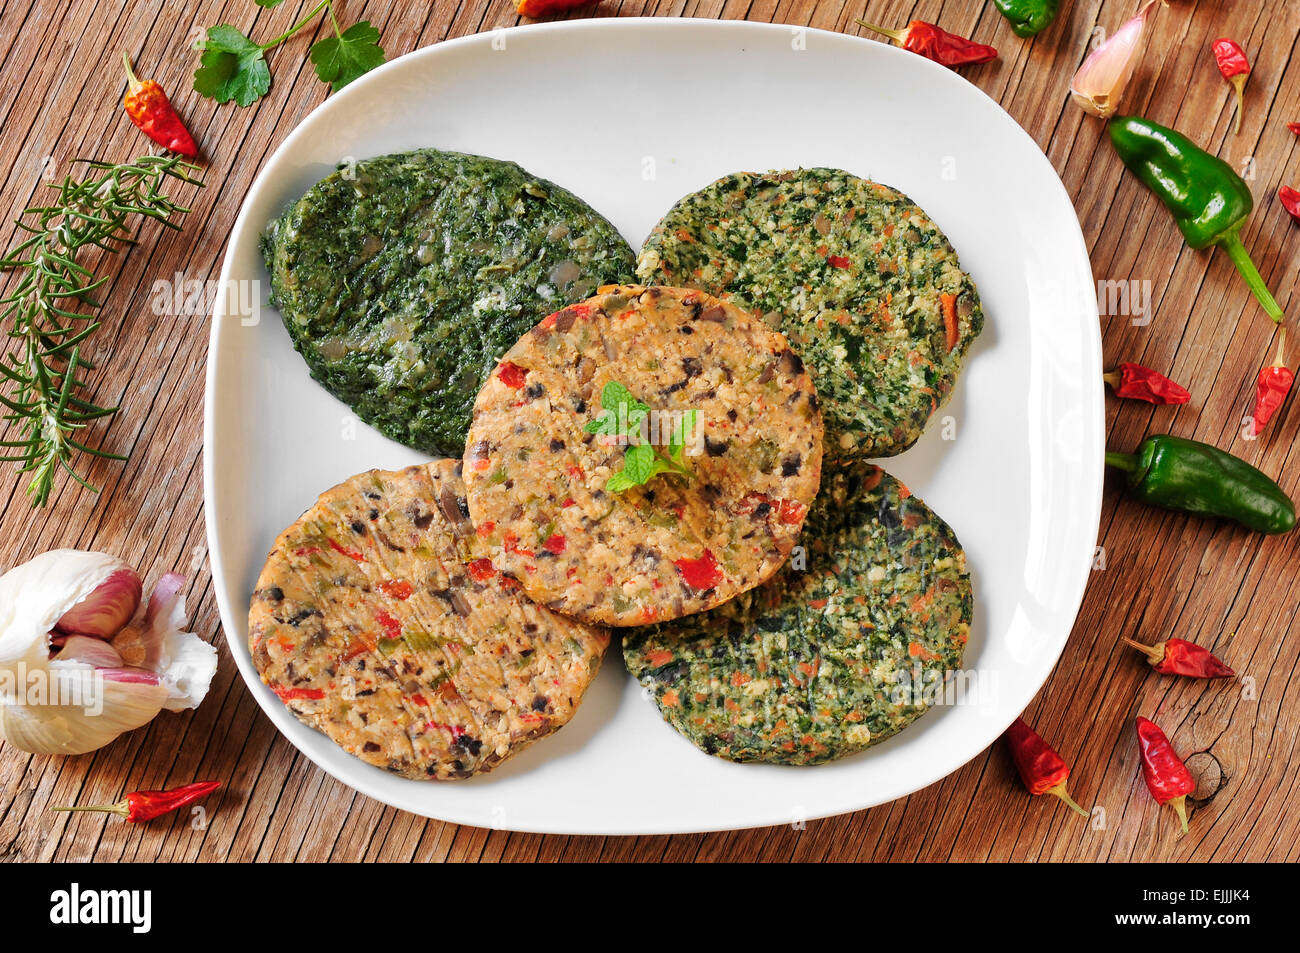 some different raw veggie burgers in a plate on a rustic wooden table - Stock Image